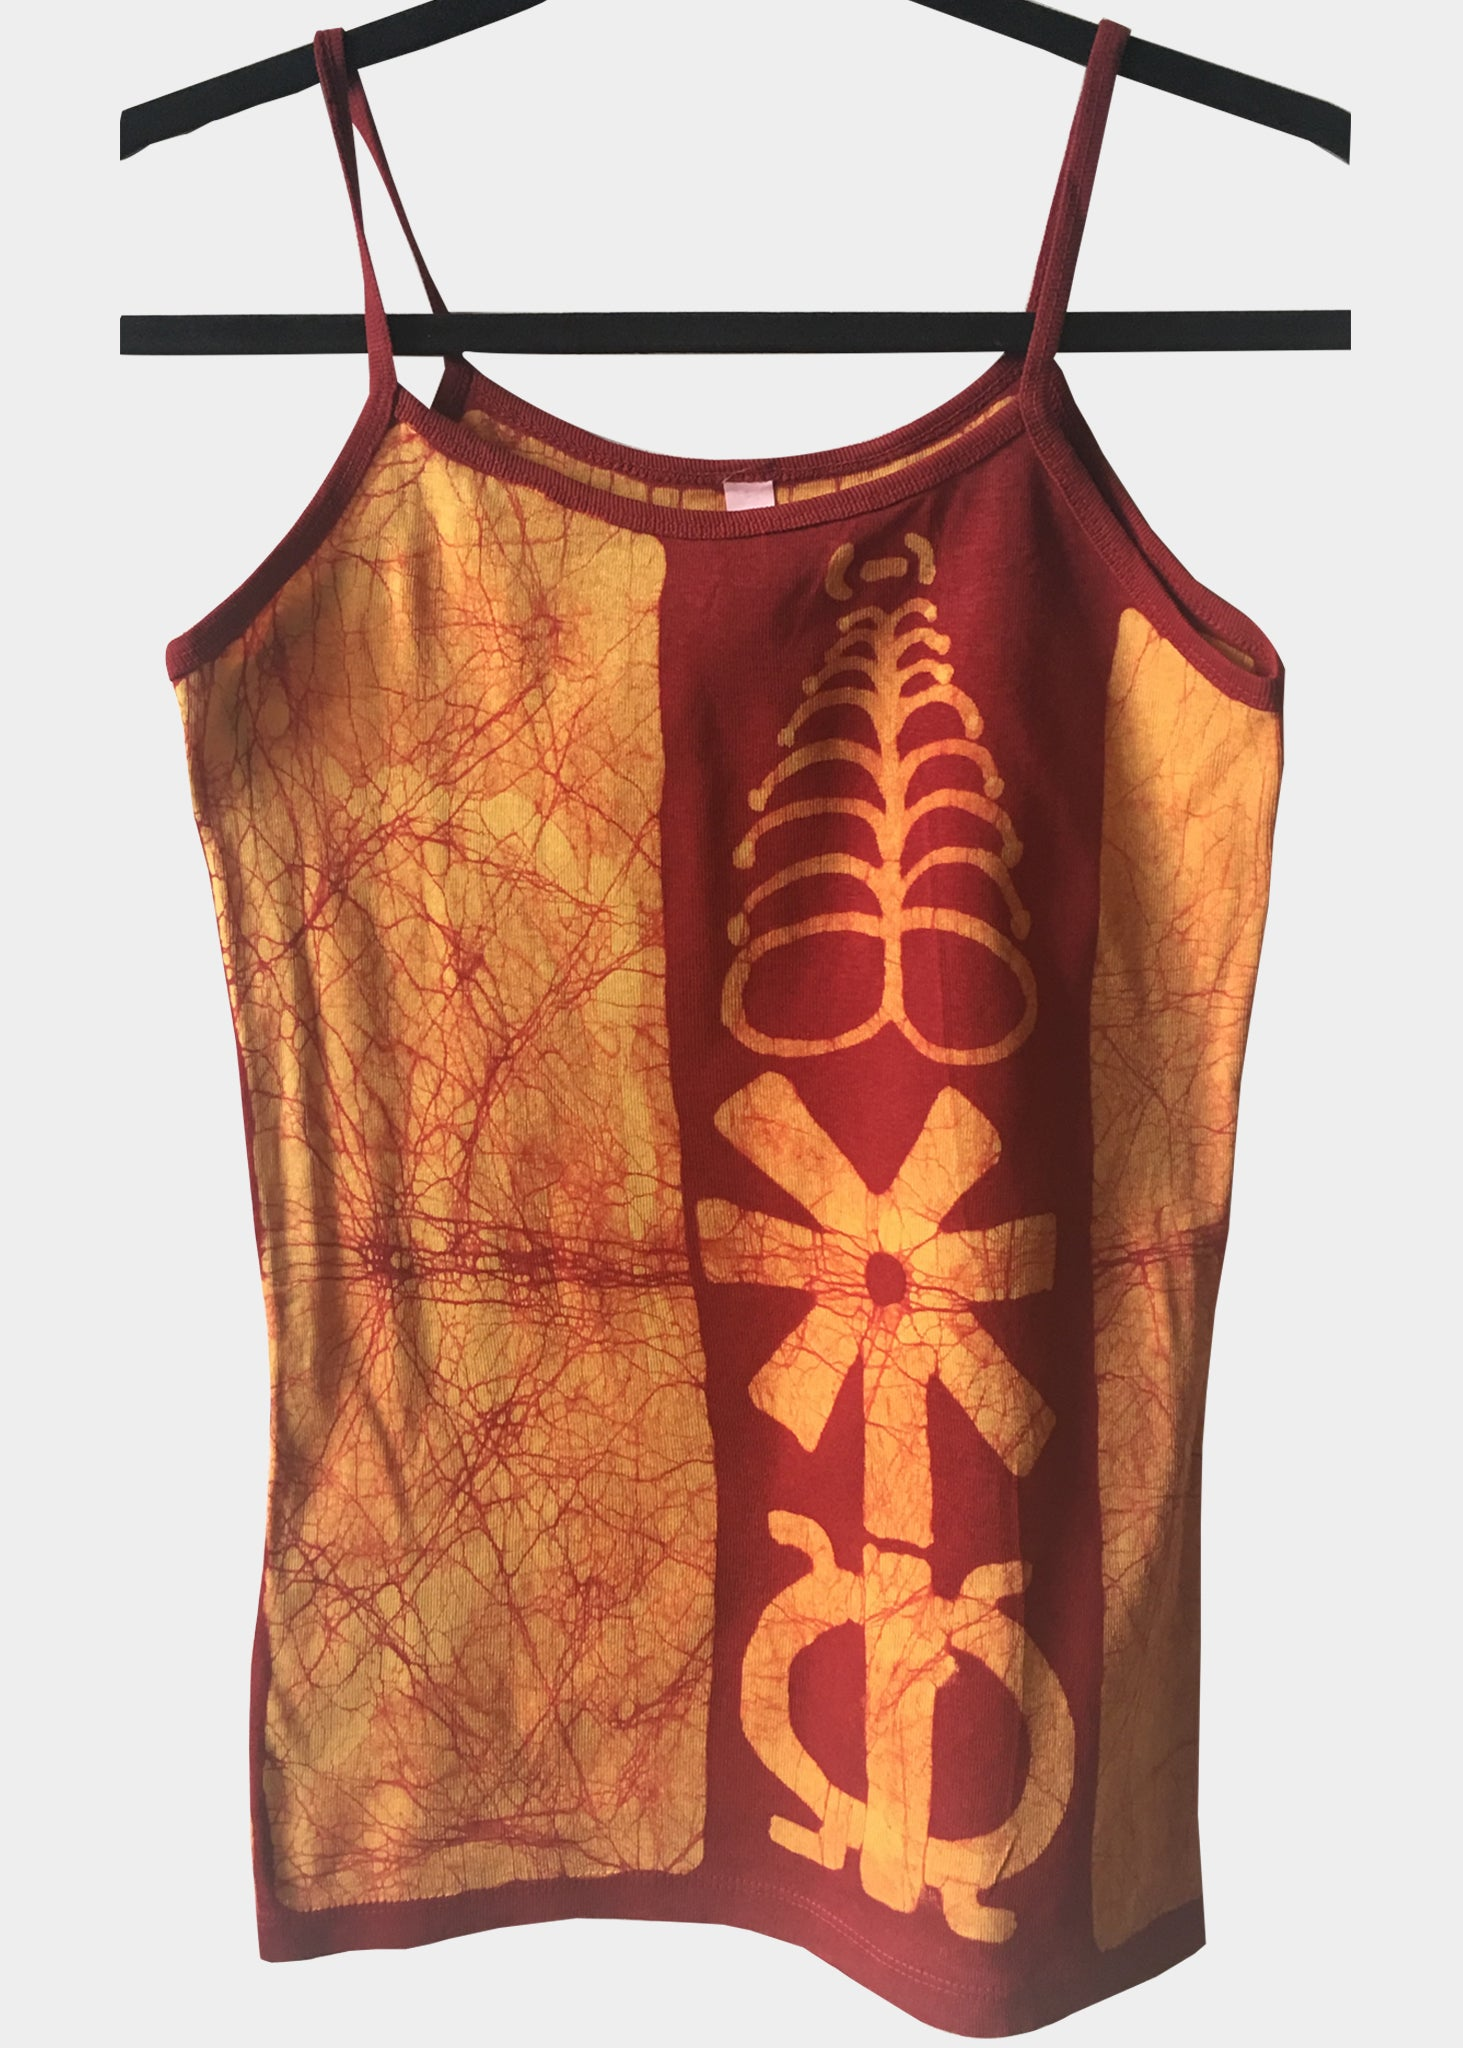 Orange and Red Fitted Tank Top with Adinkra Symbols